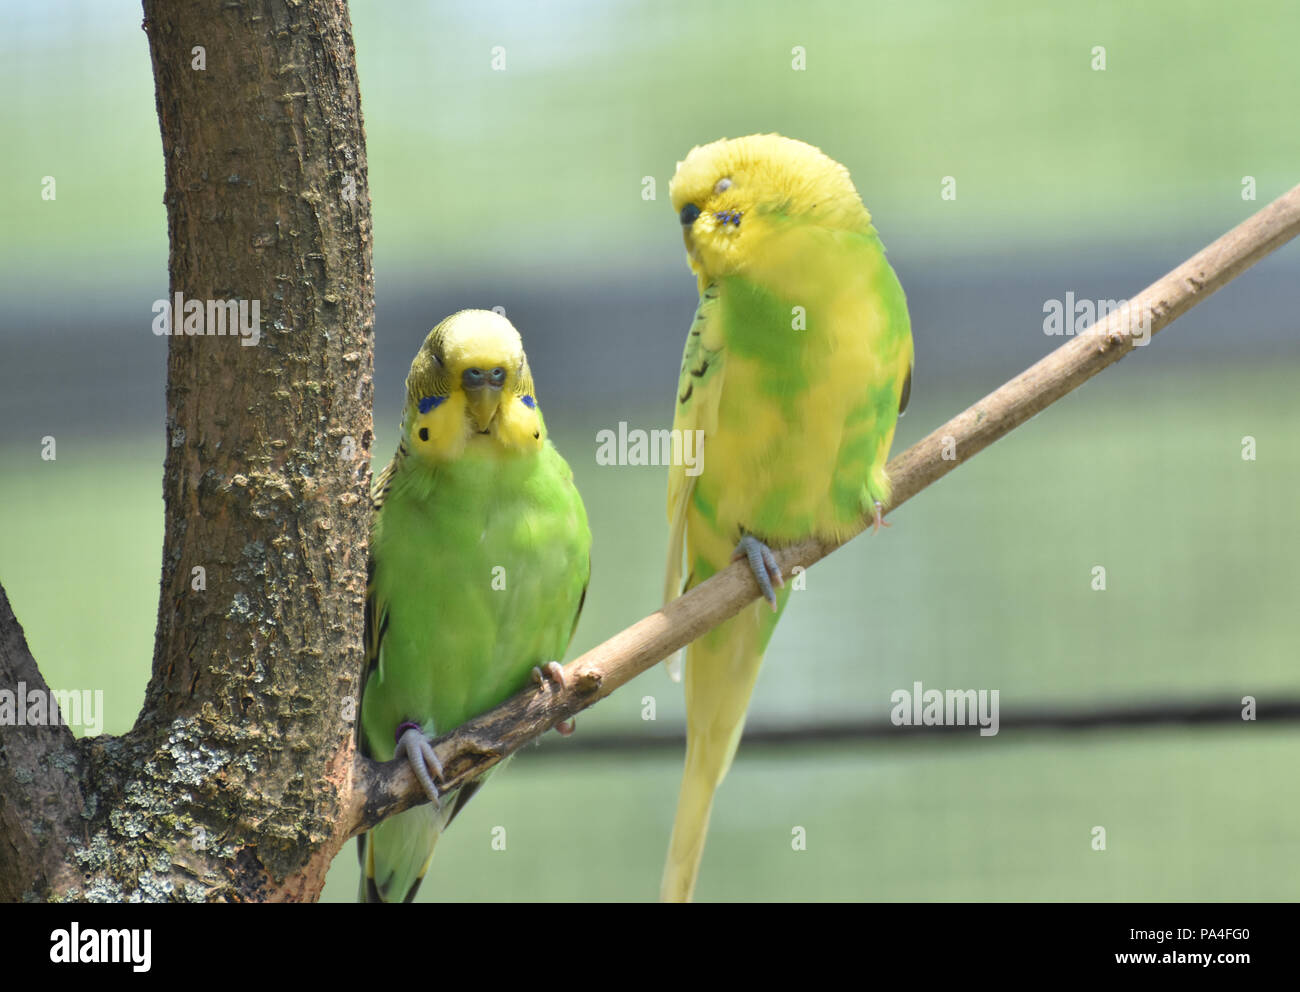 Branch with a pair of budgies sitting together. Stock Photo